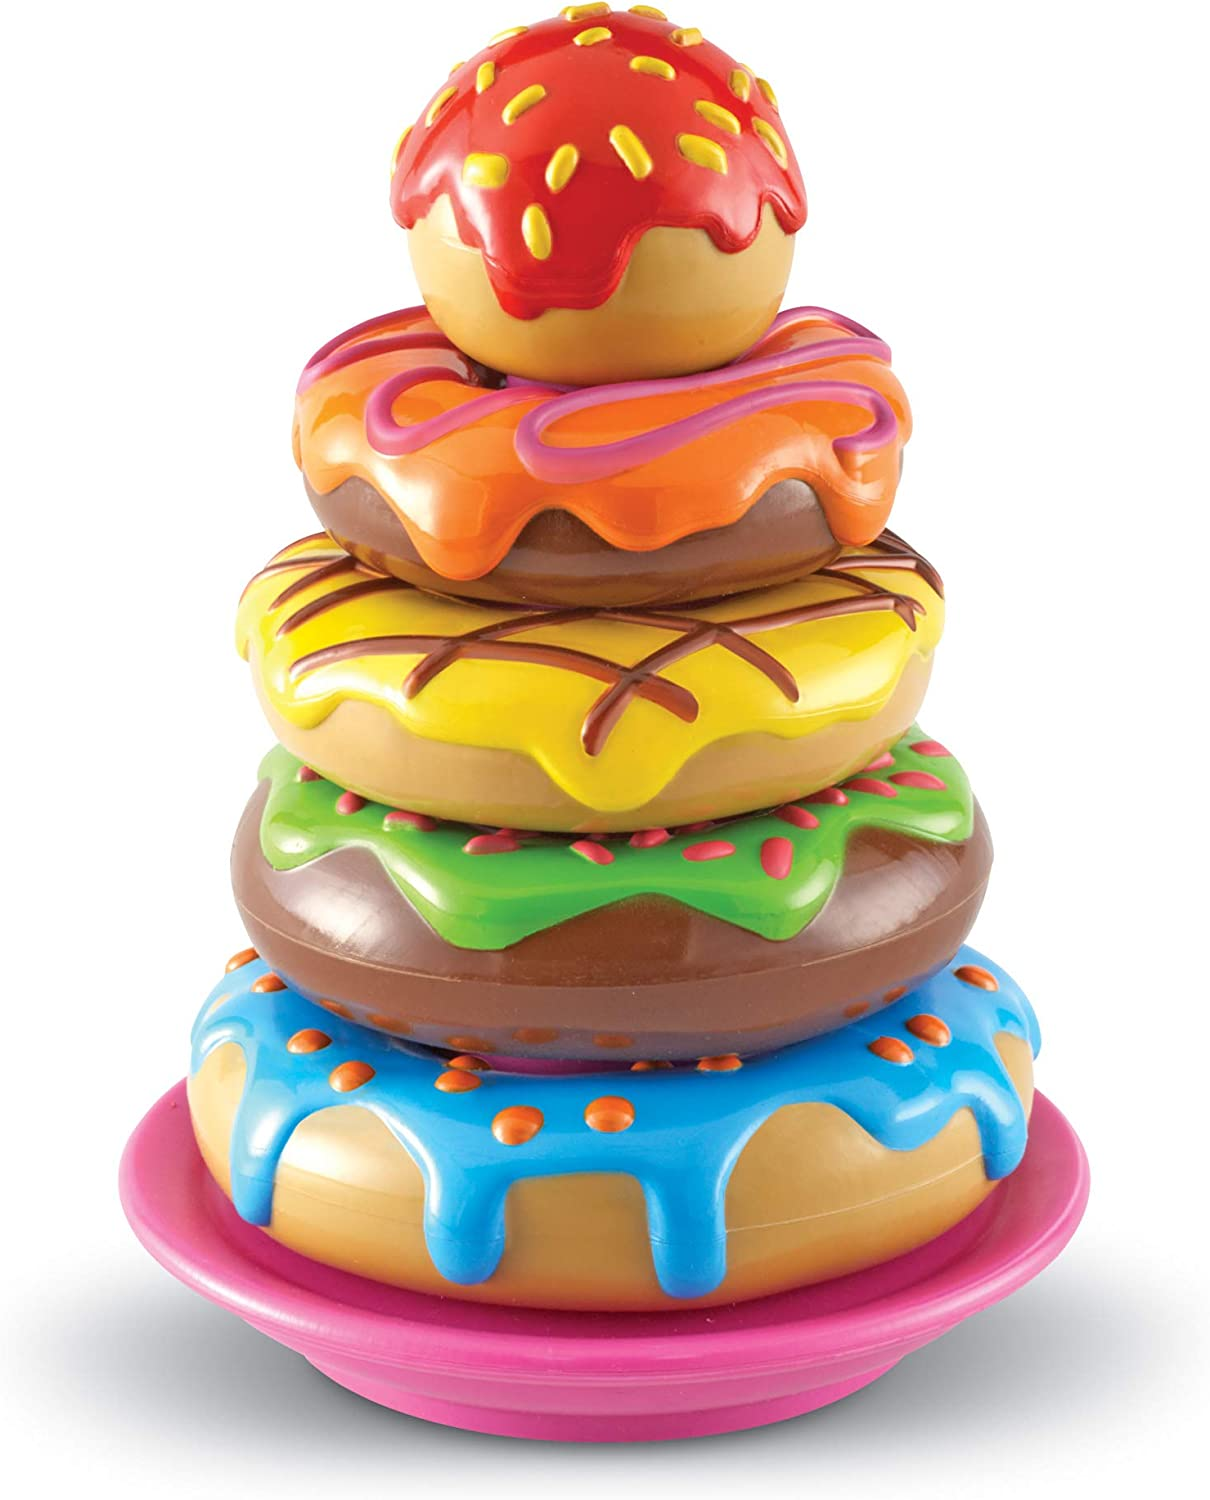 Learning Resources Smart Snacks Stack 'em Up Doughnuts, 5 Colorful Donuts, Ages 2+